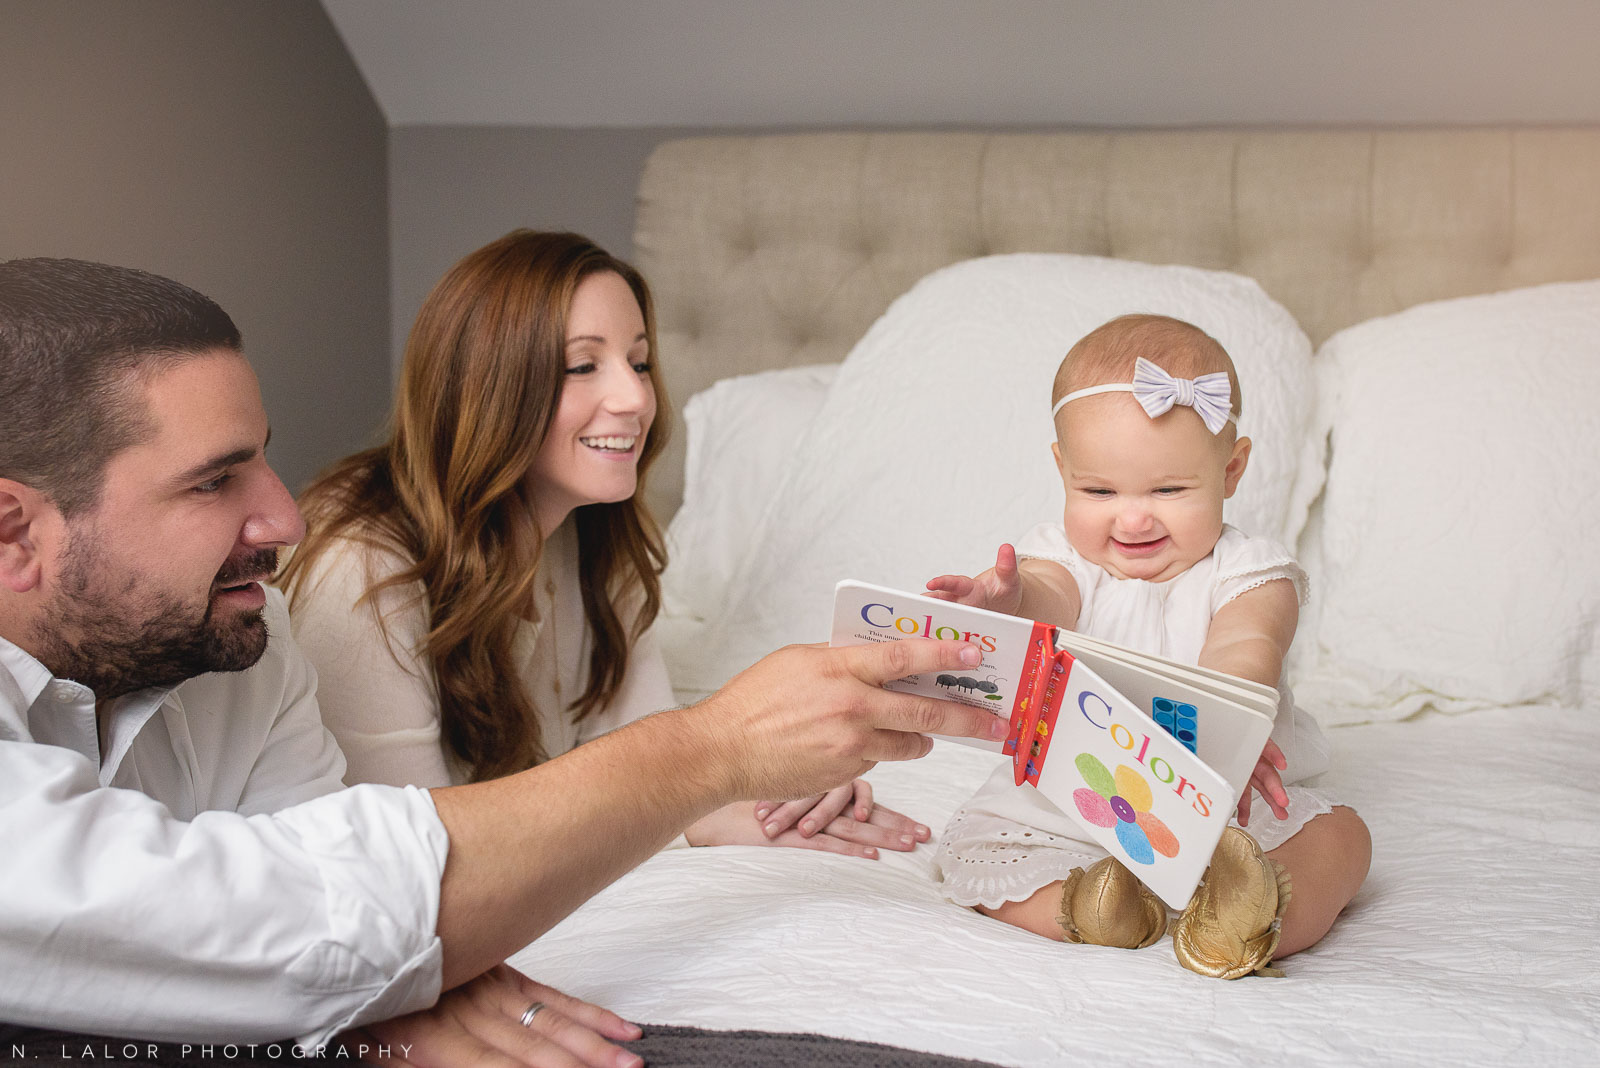 Parents having fun and reading with their 1-year old daughter. Lifestyle family portrait by N. Lalor Photography.